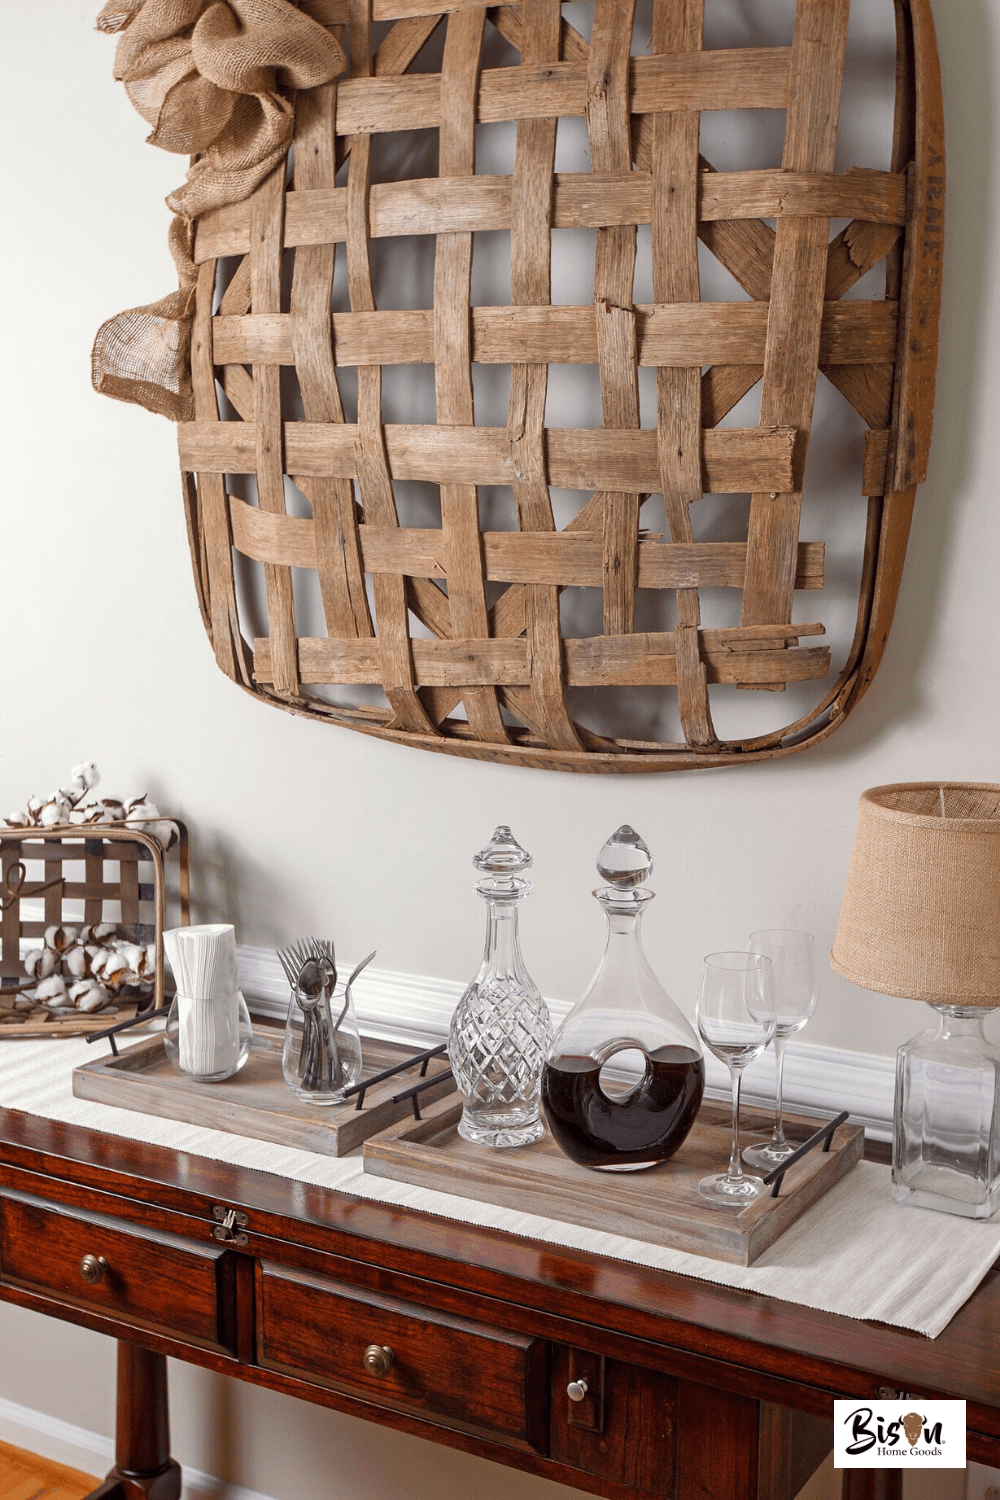 3 Ways to Style Your Nesting Trays